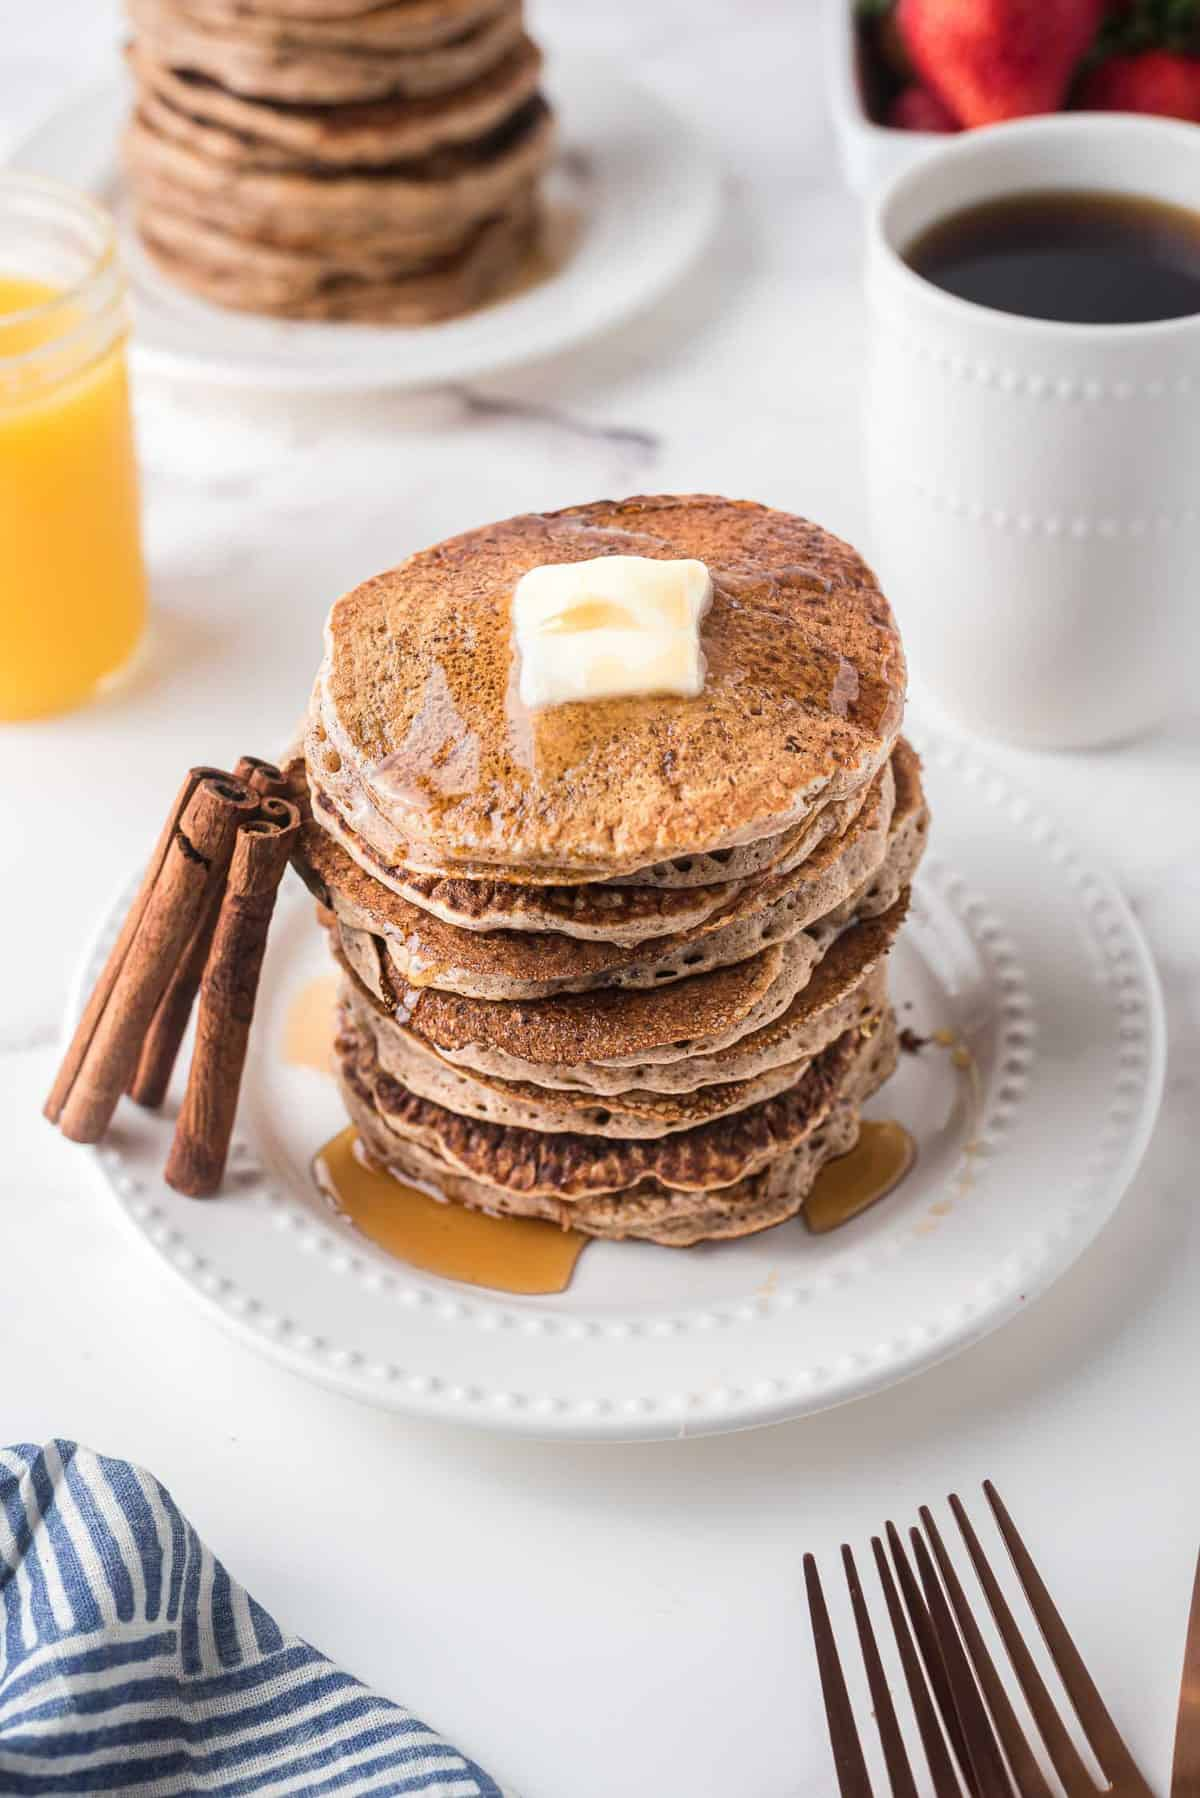 Large stack of pancakes with cinnamon sticks leaning against it.